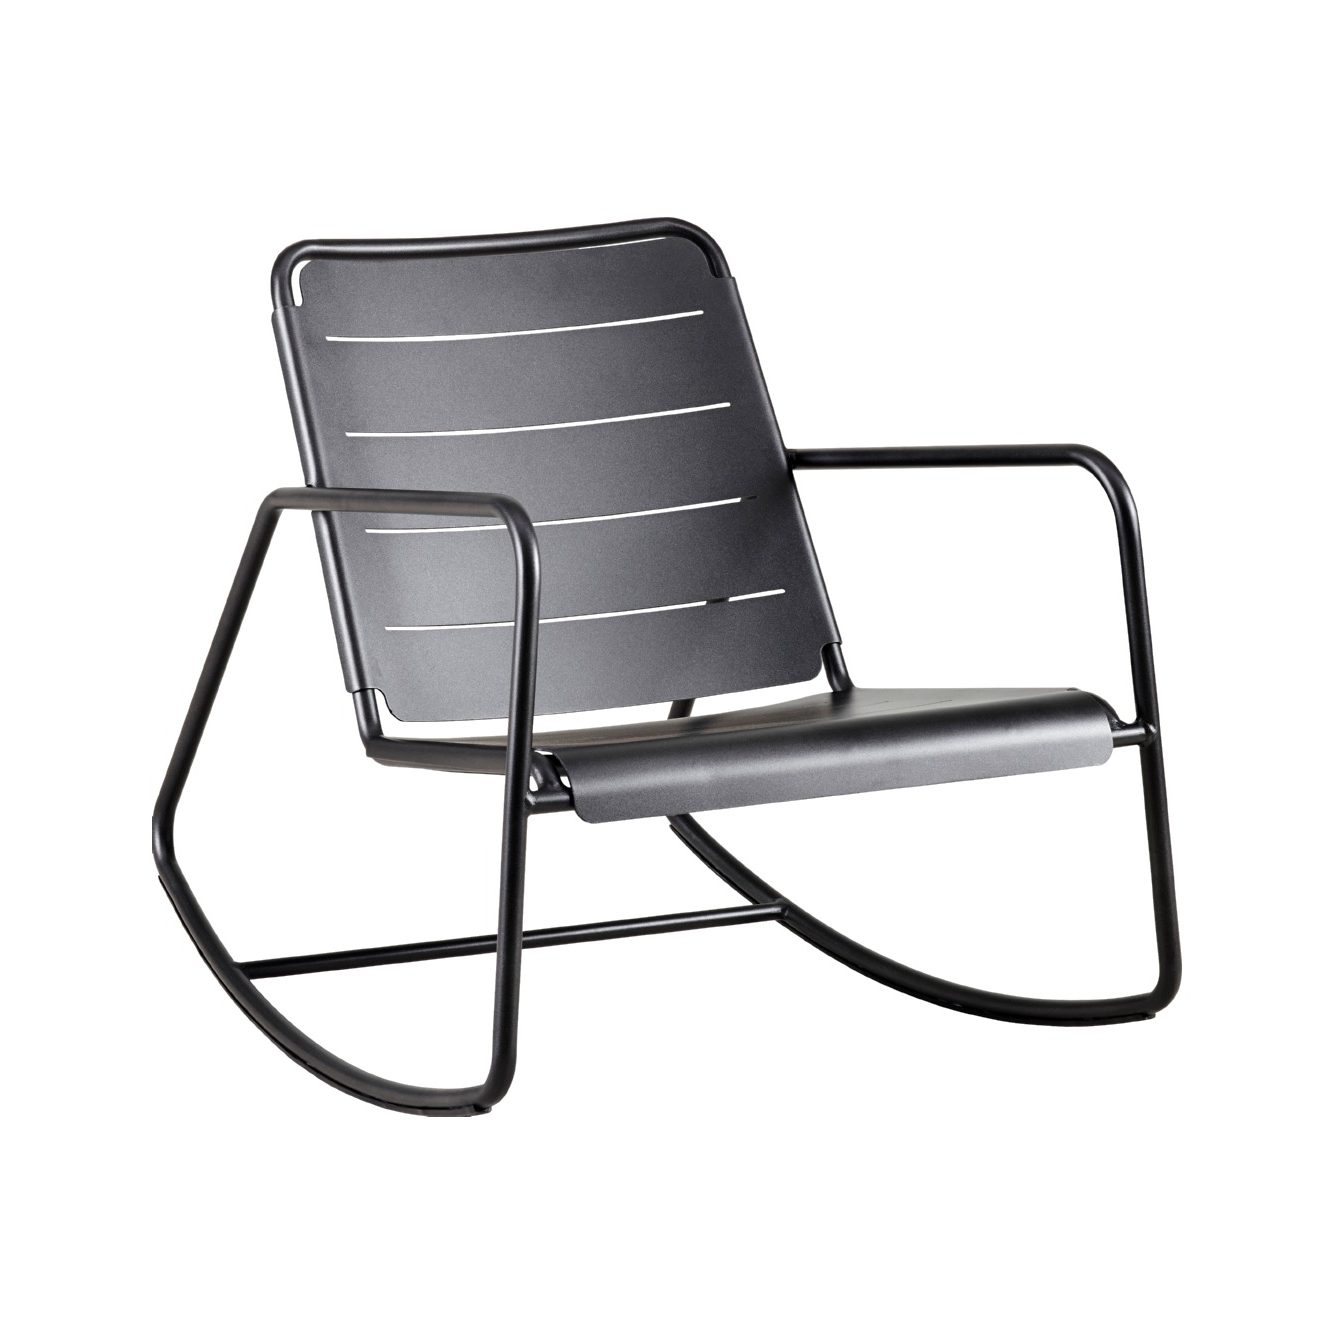 Copenhagen Rocking Chair - Cane-Line | Aluminum | Jdv avec Rocking Chair Jardin